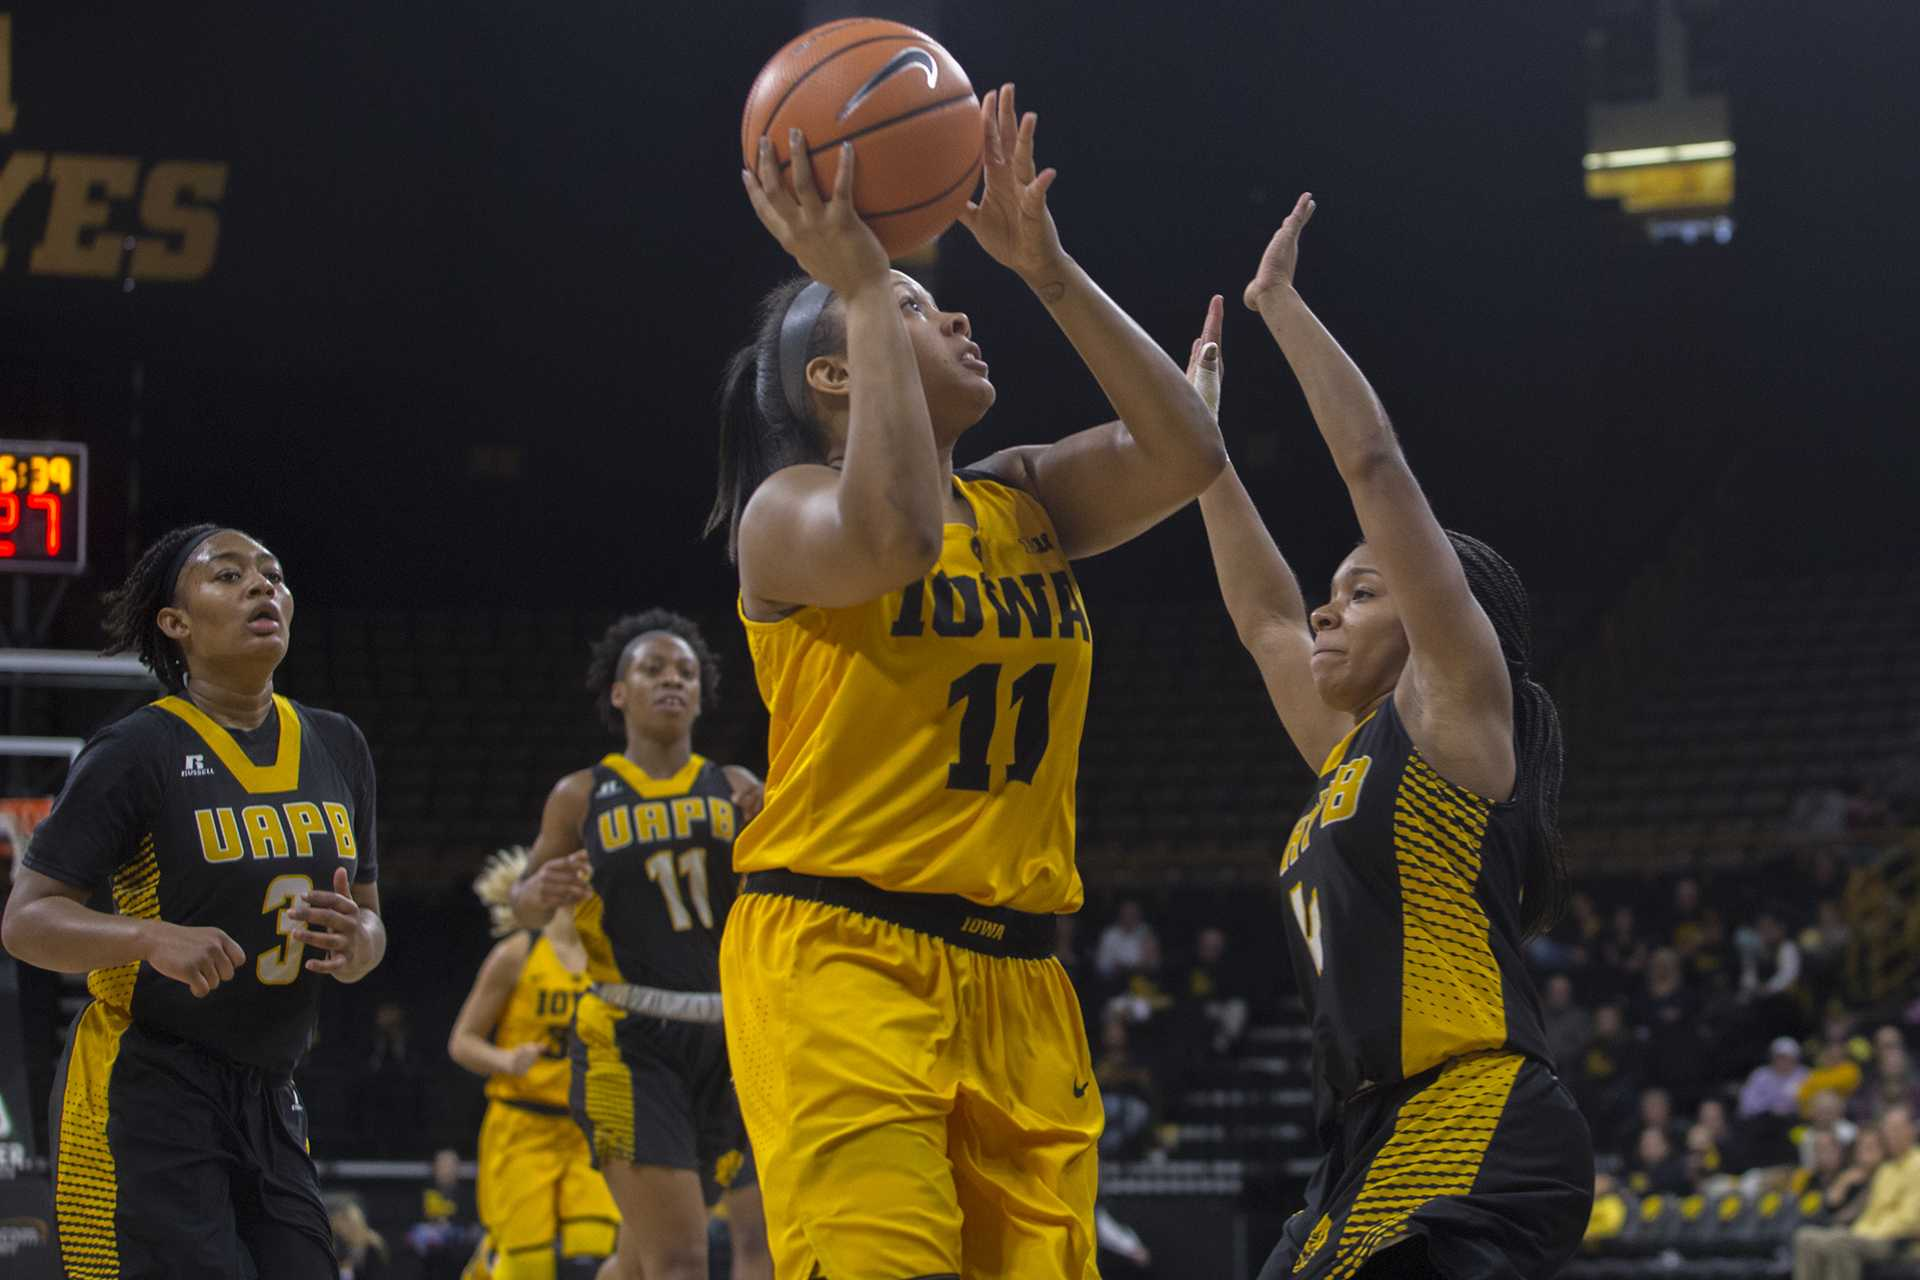 Iowa guard Tania Davis attempts a shot during the Iowa/Arkansas-Pine Bluff basketball game in Carver-Hawkeye Arena on Saturday, Dec. 9, 2017. The Hawkeyes defeated the Golden Lions, 85-45. (Lily Smith/The Daily Iowan)